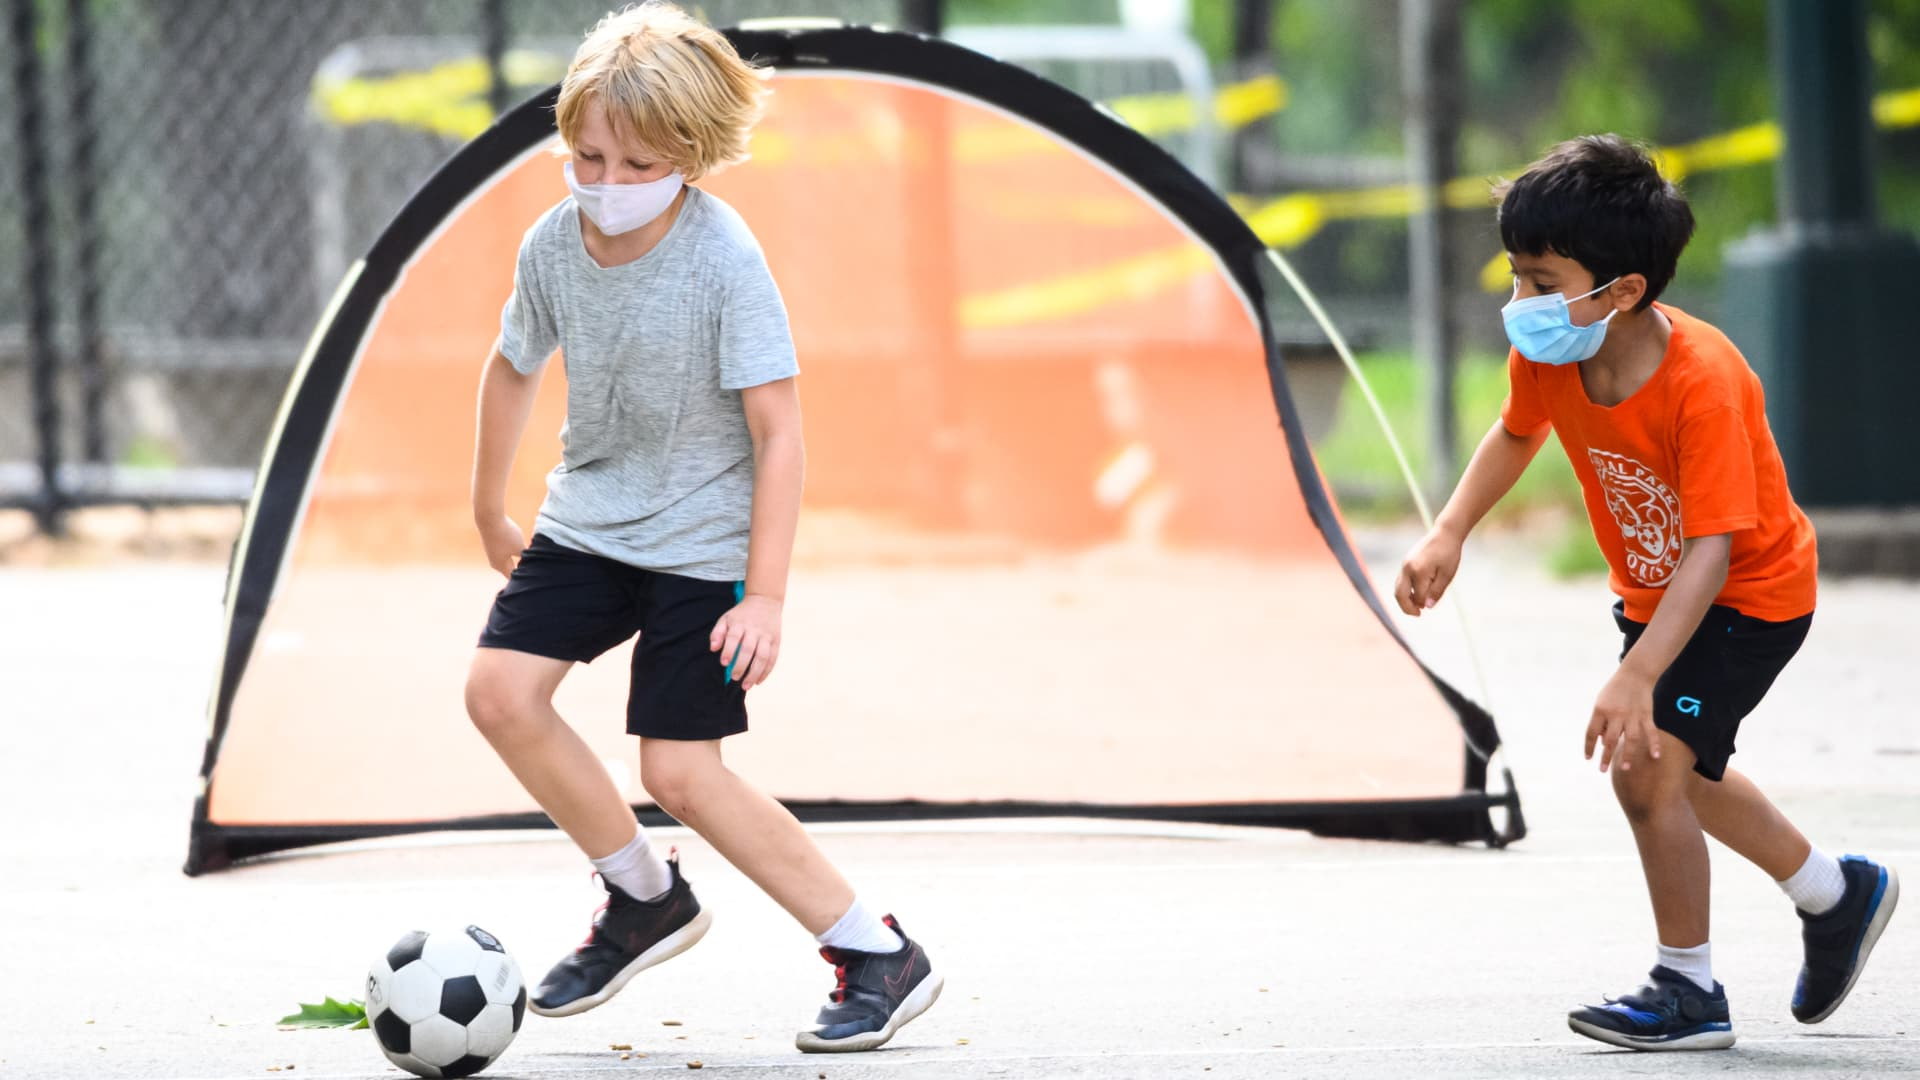 Kids wear face masks while playing soccer.